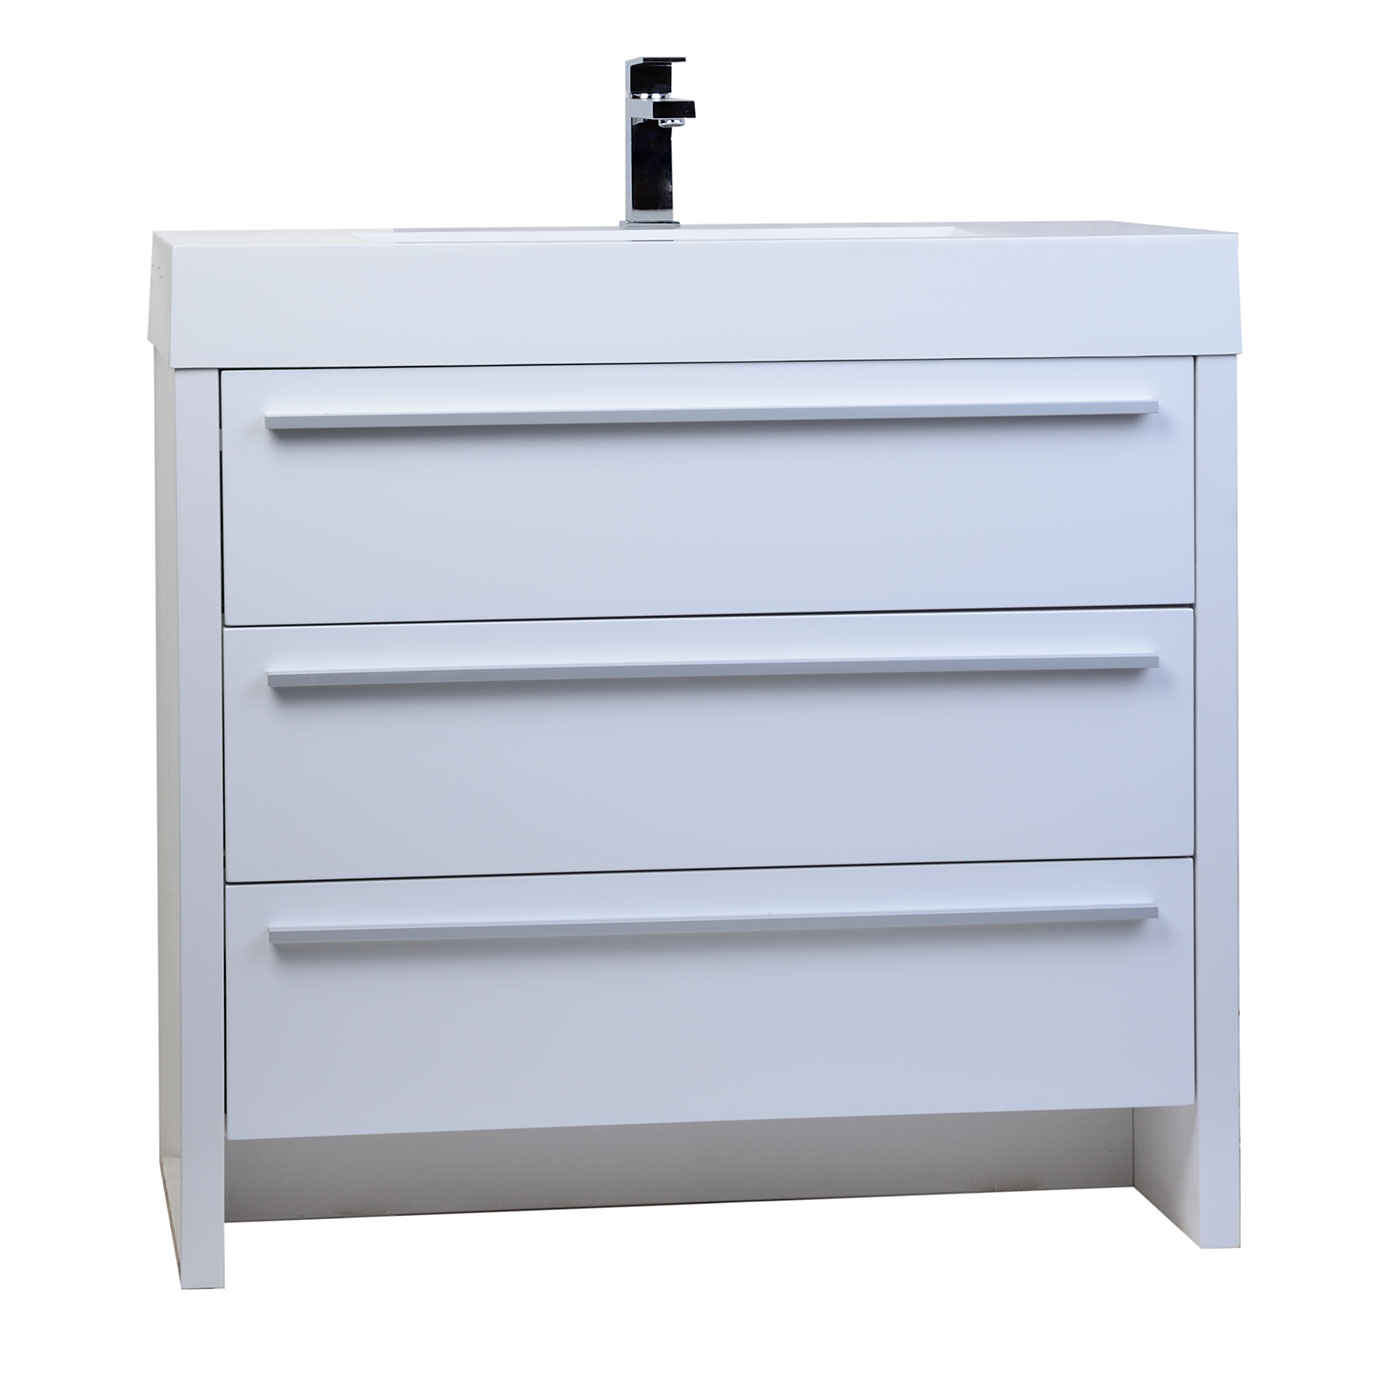 Buy Vinnce 35 5 Inch Modern Bathroom Vanity In Gloss White Tn Lx900 Hgw On